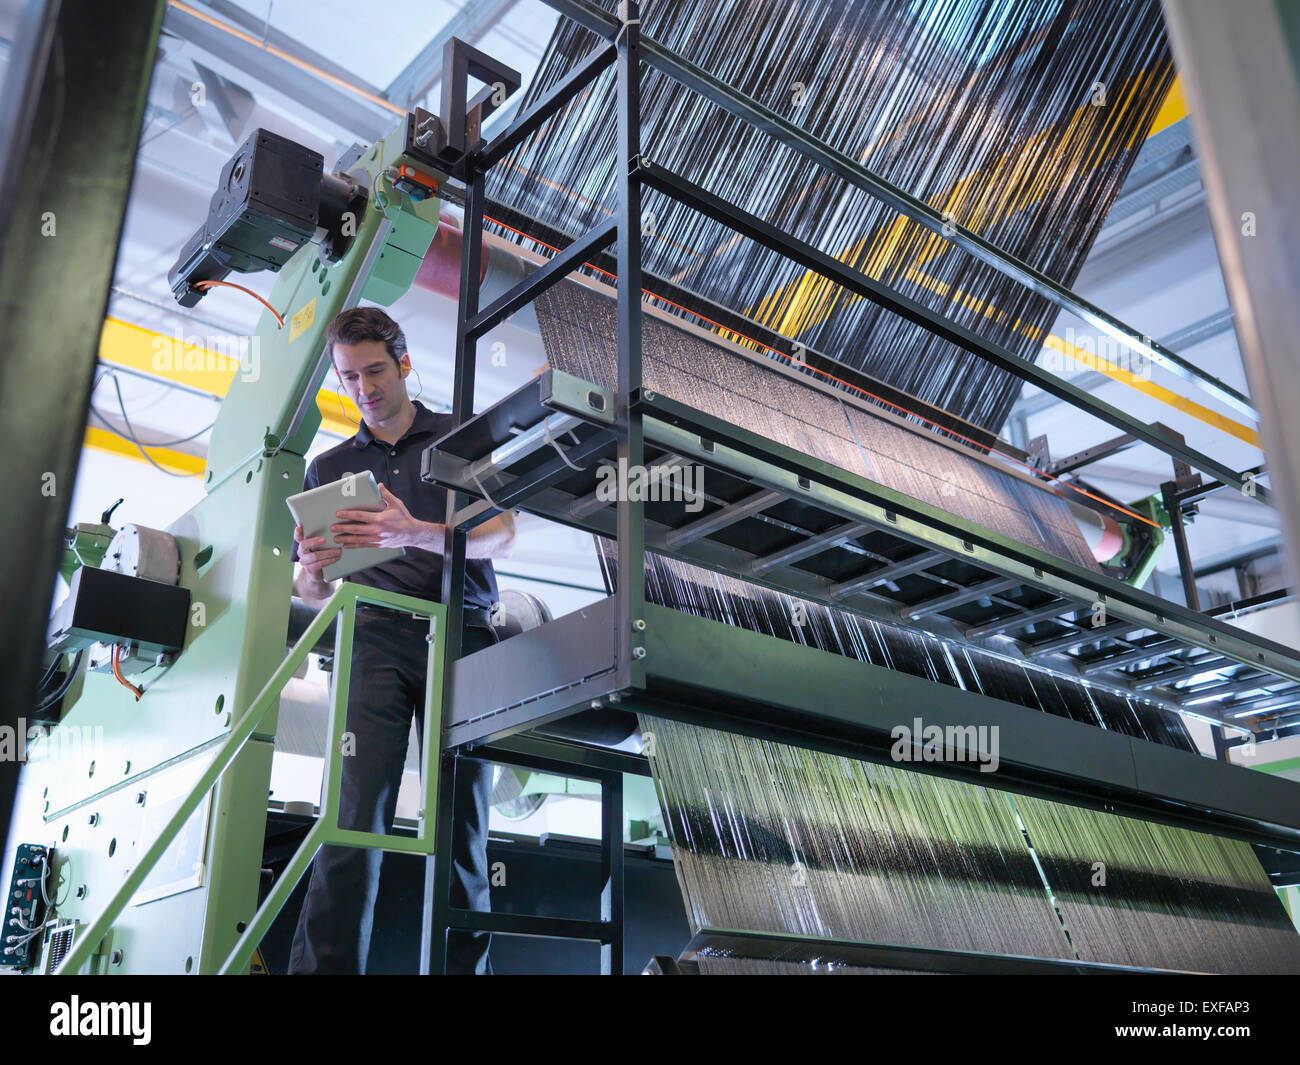 Worker inspecting carbon fibre on loom in carbon fibre factory - Stock Image